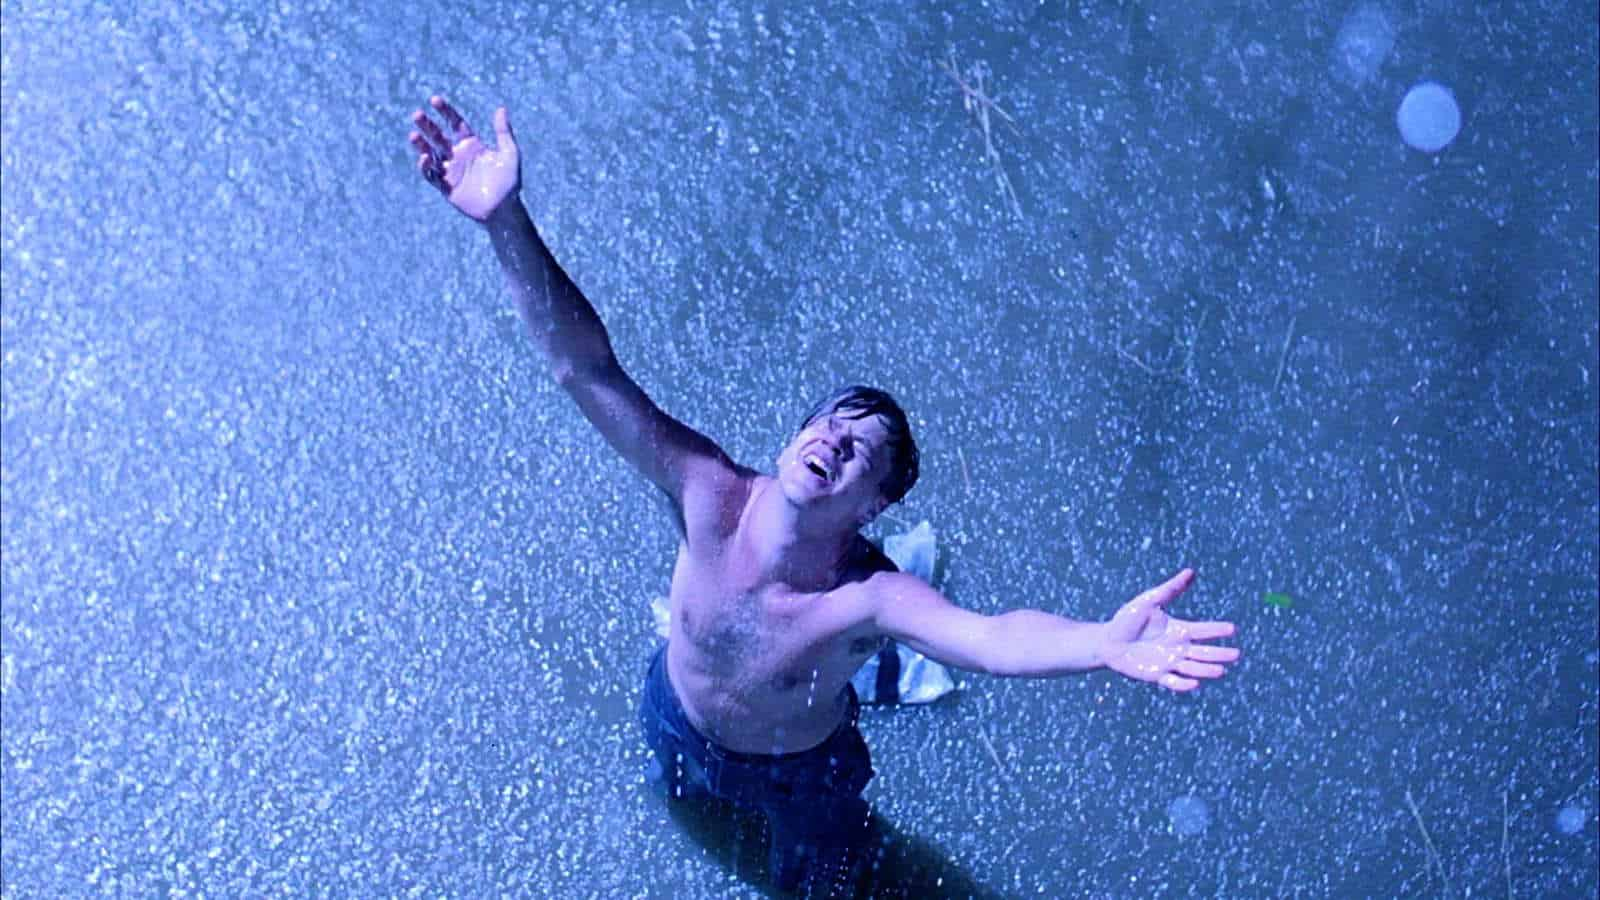 High Angle Shots - Camera Angles -Shawshank